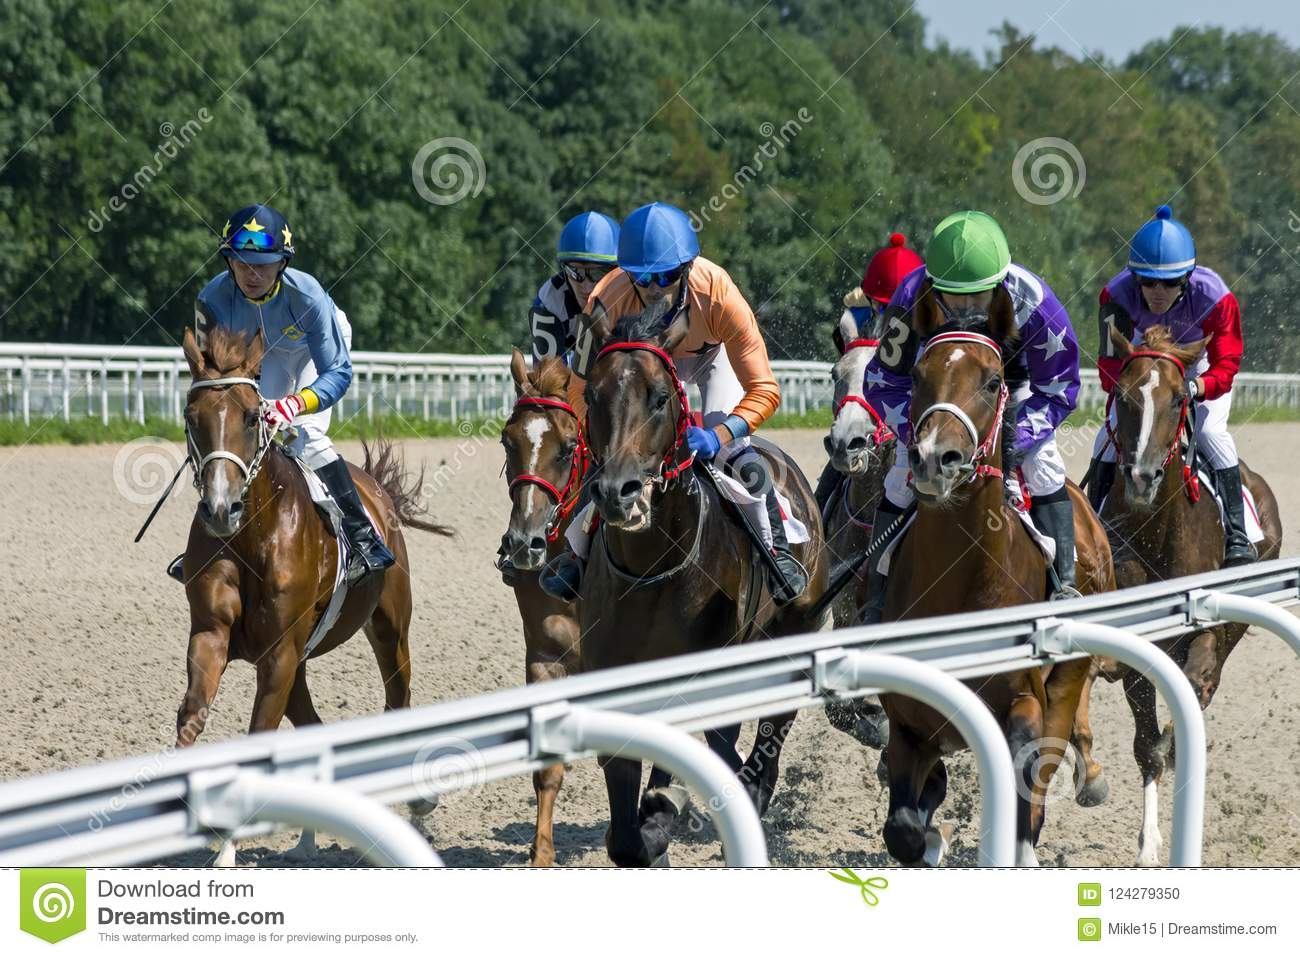 Horse racing for the prize of Budennogo in Pyatigorsk.